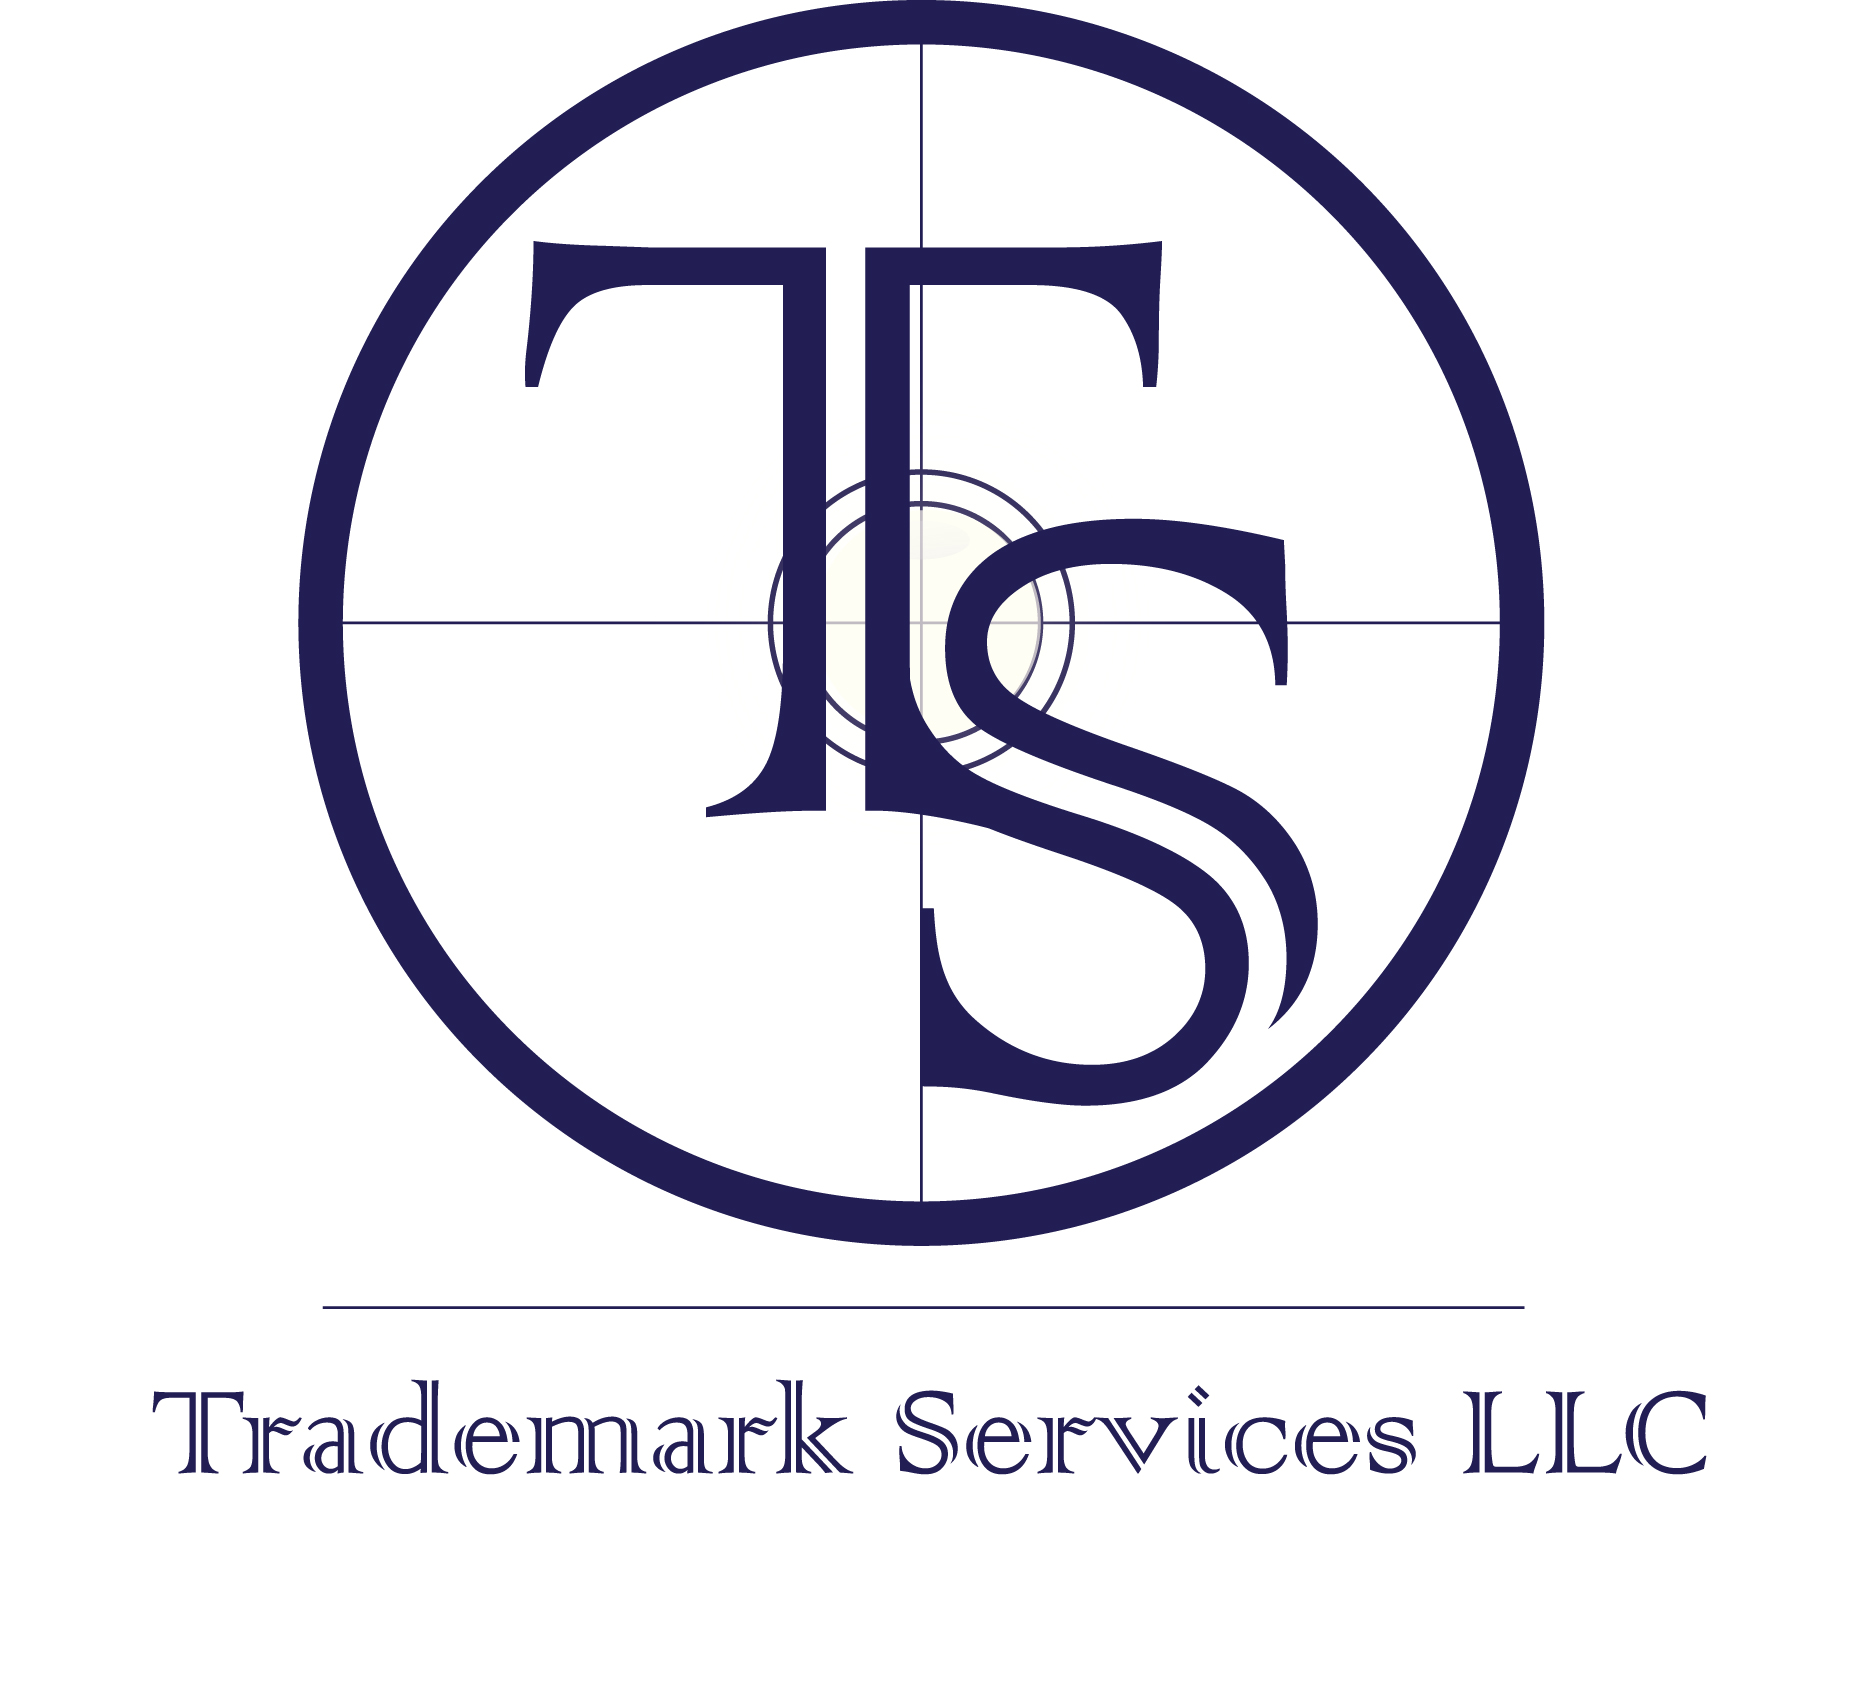 Trademark Services LLC